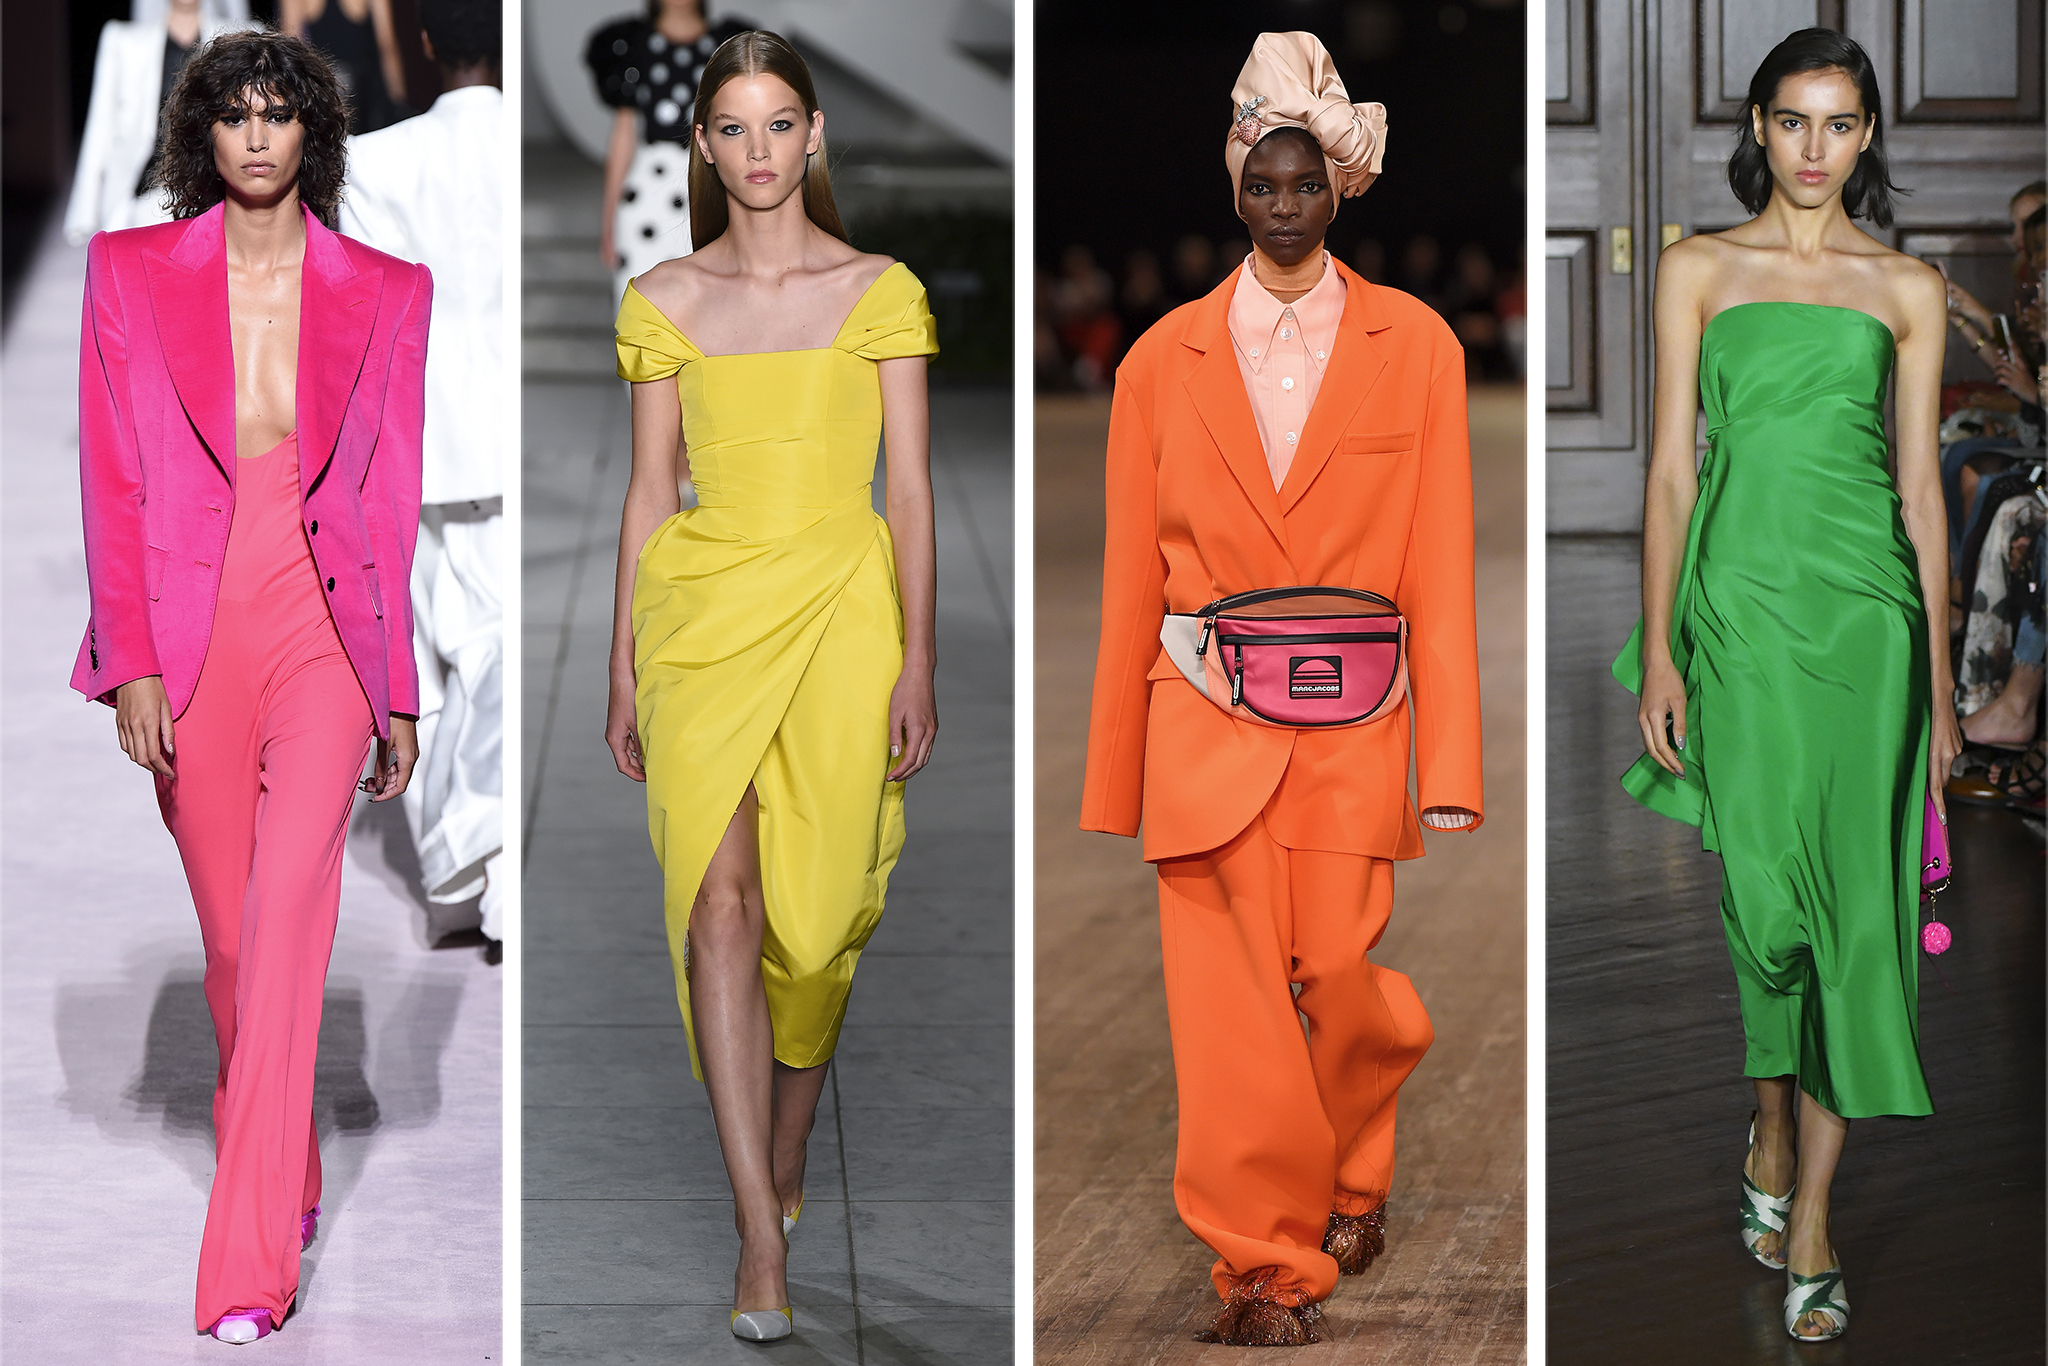 No neutral ground here, the statement was clear when it comes to the preferred spring palette: bright, saturated hues either monochromatically or colorblocked à la Tom Ford.  Pictured: Tom Ford, Carolina Herrera, Marc Jacobs, and Sachin & Babi